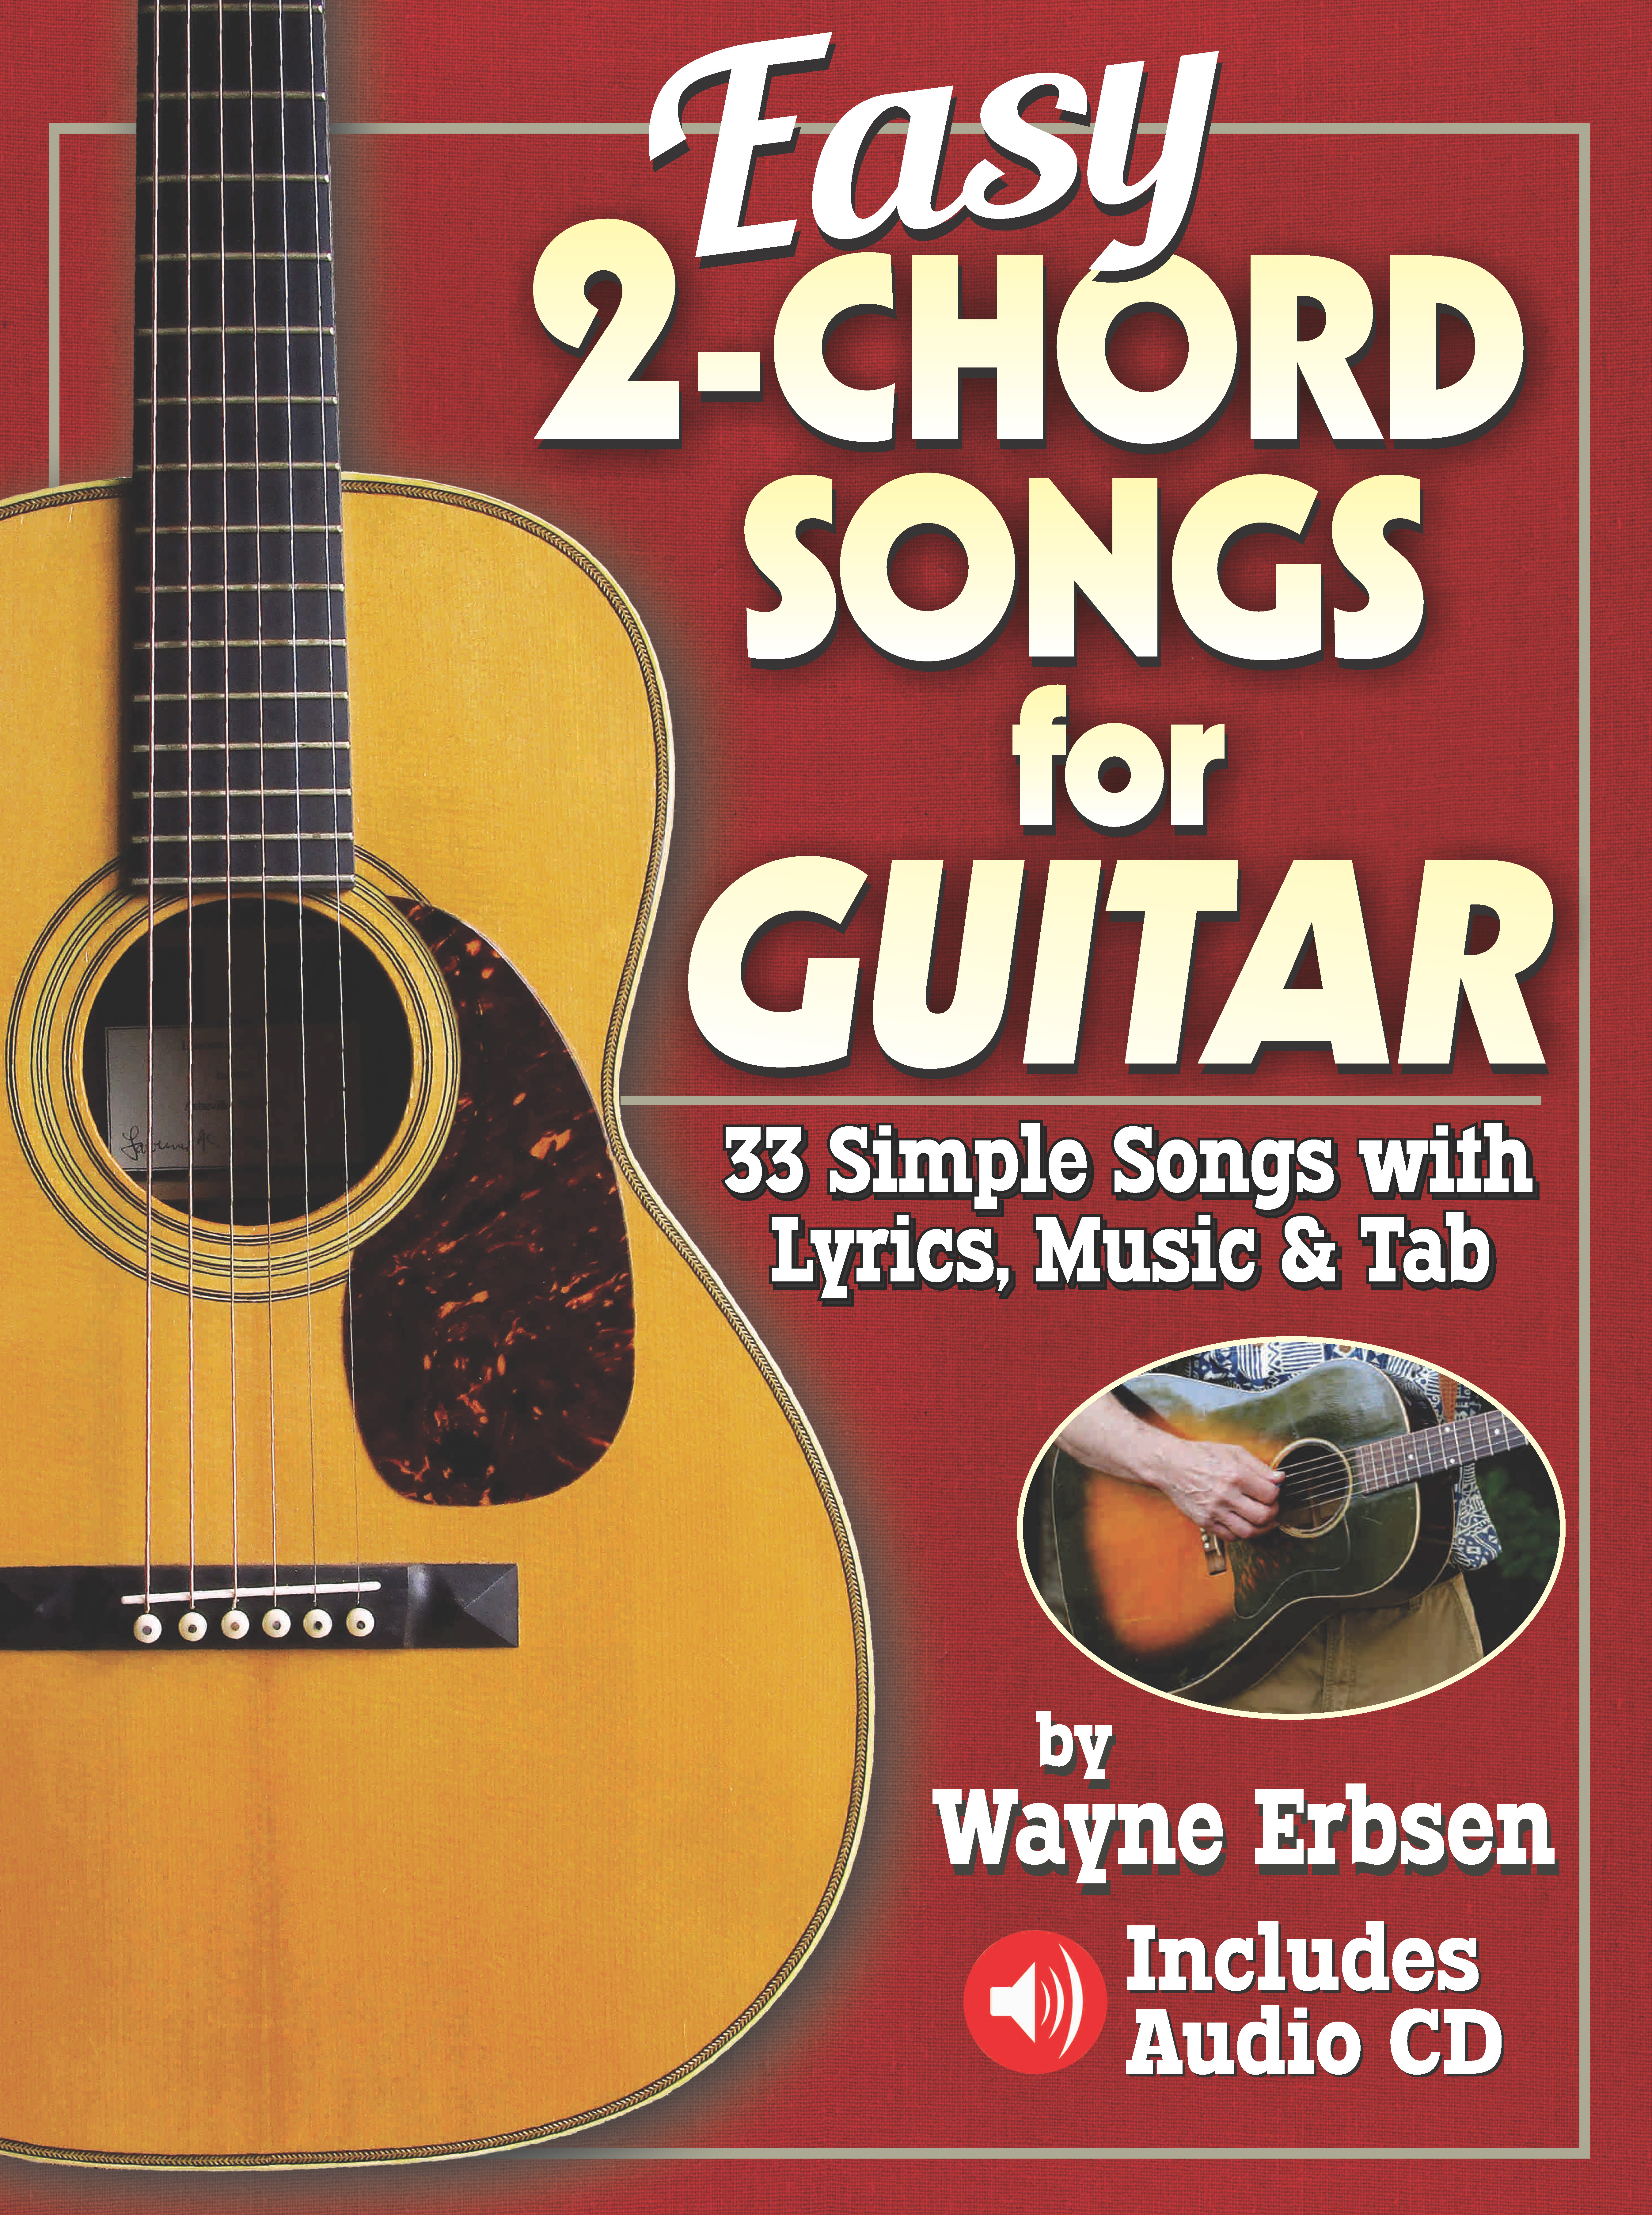 Easy 2-Chord Songs for Guitar (Book & CD set) - NEW!